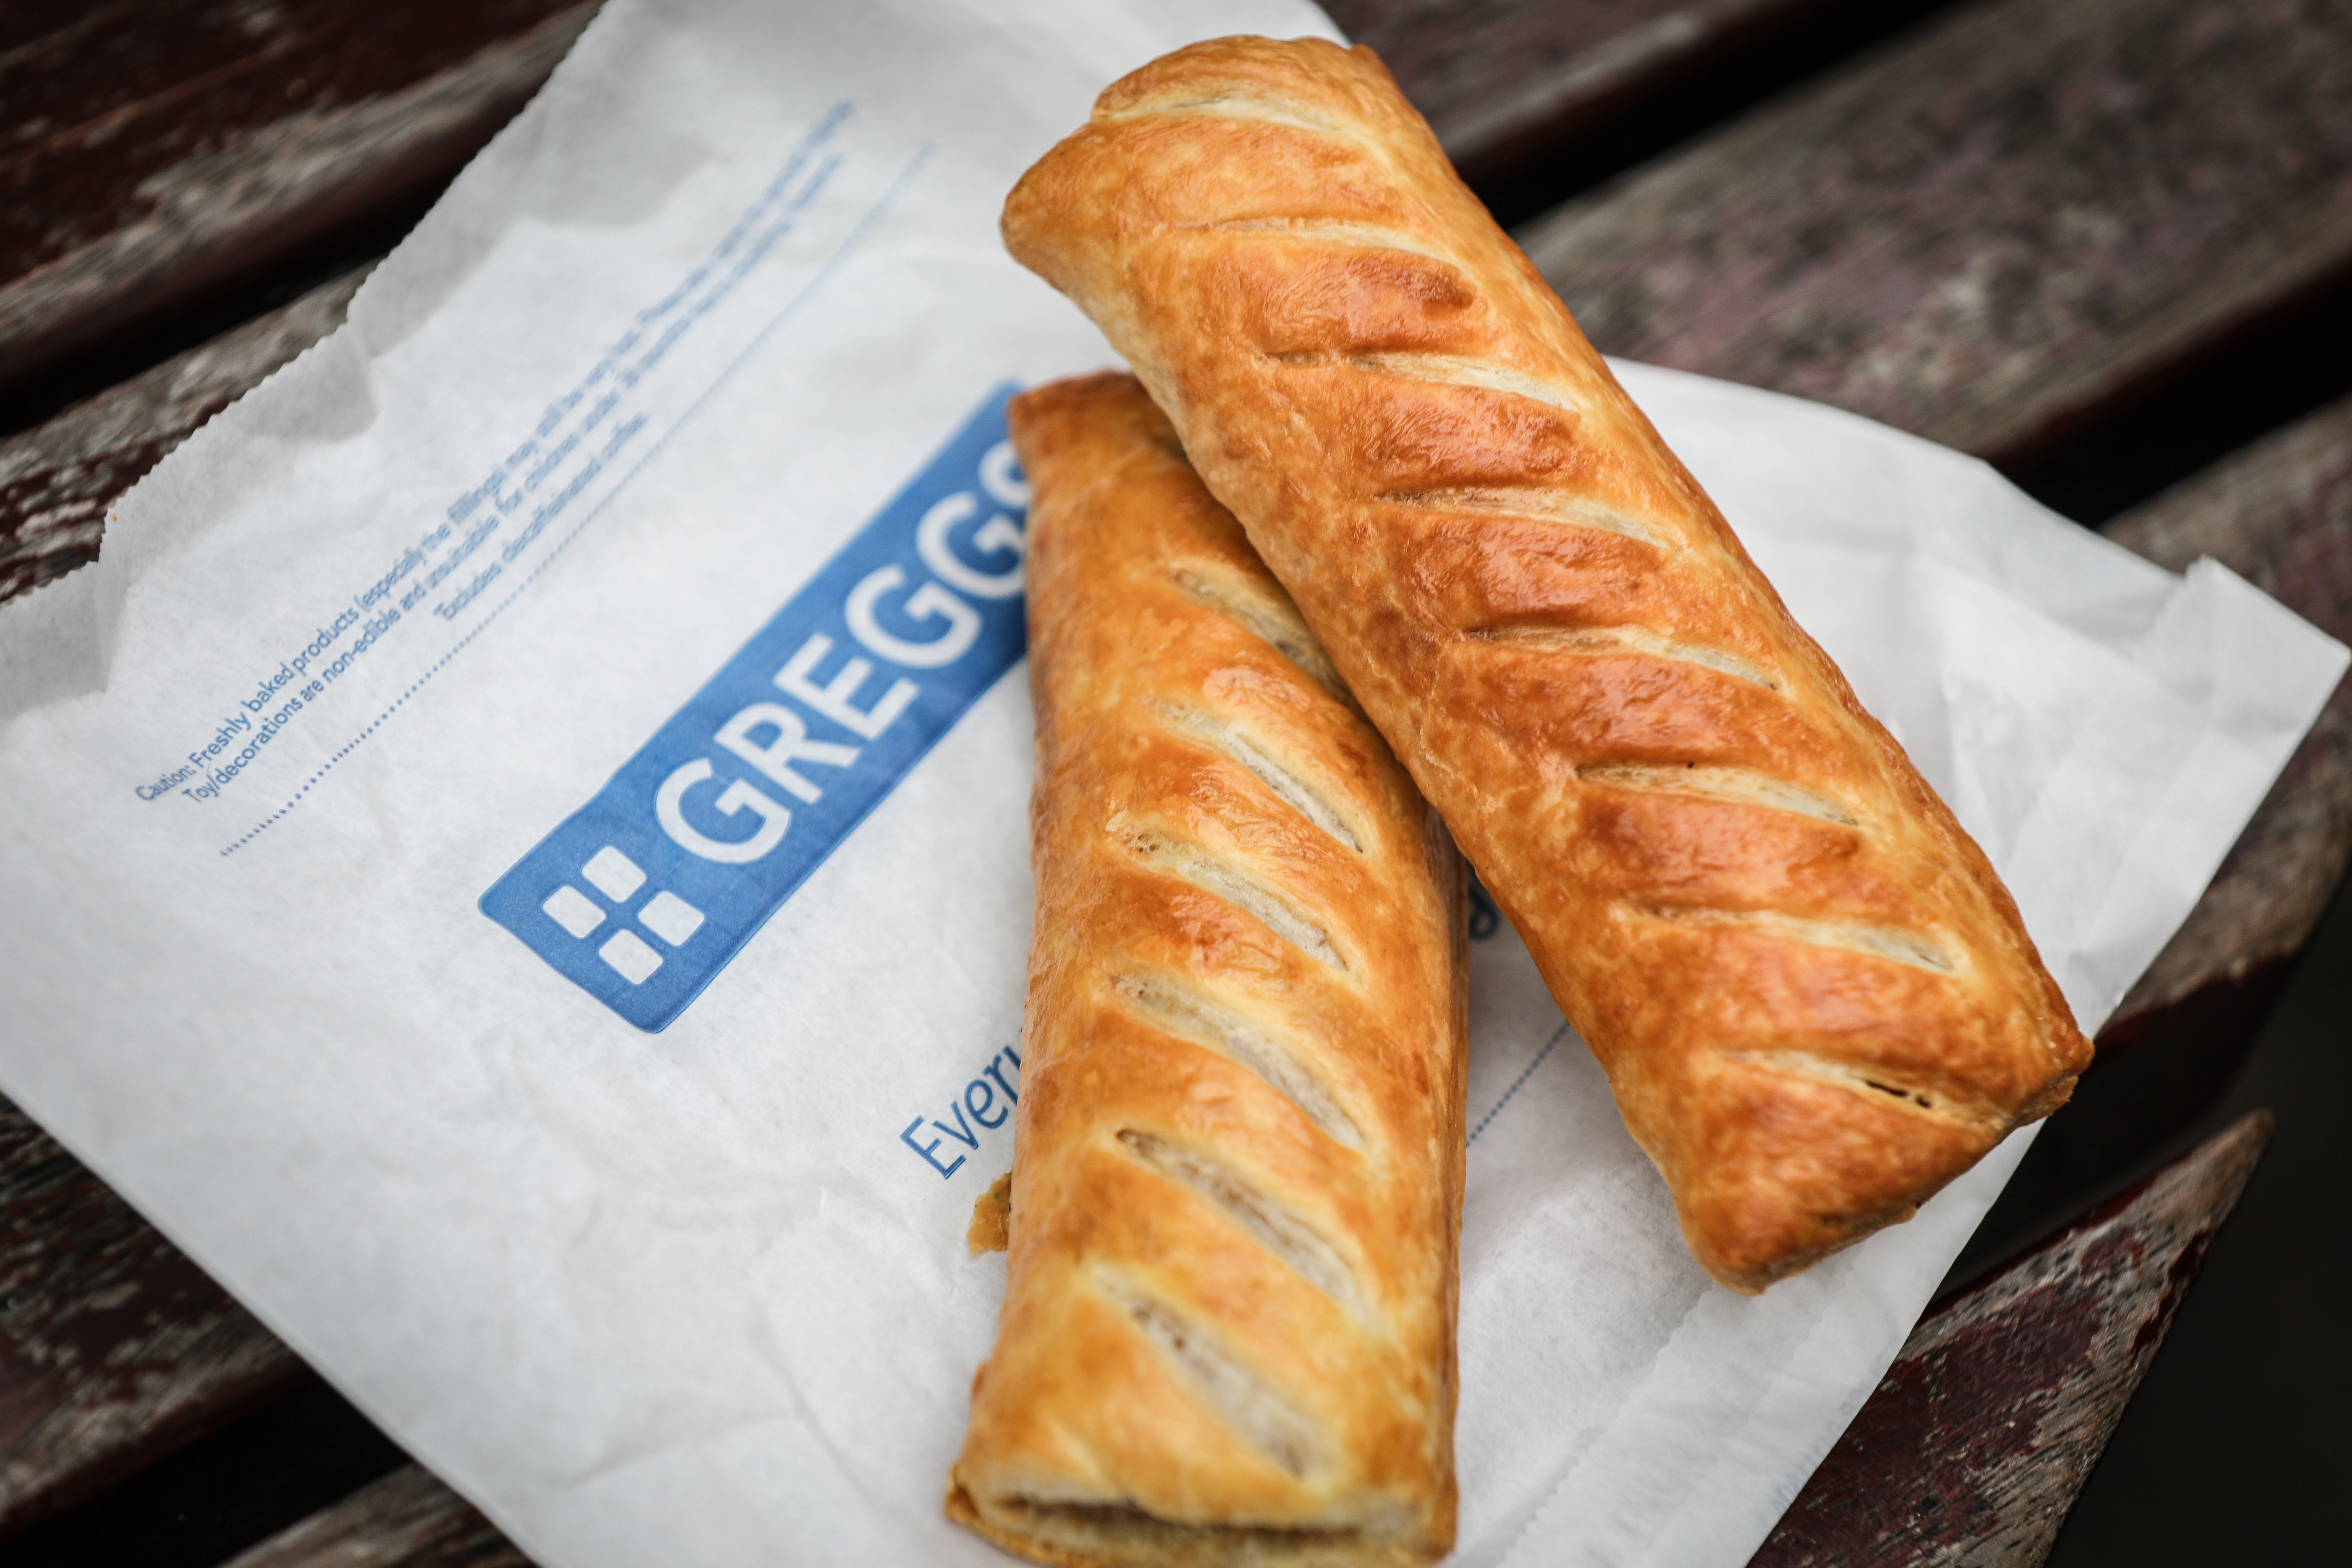 Vegan Sausage Rolls from Greggs.